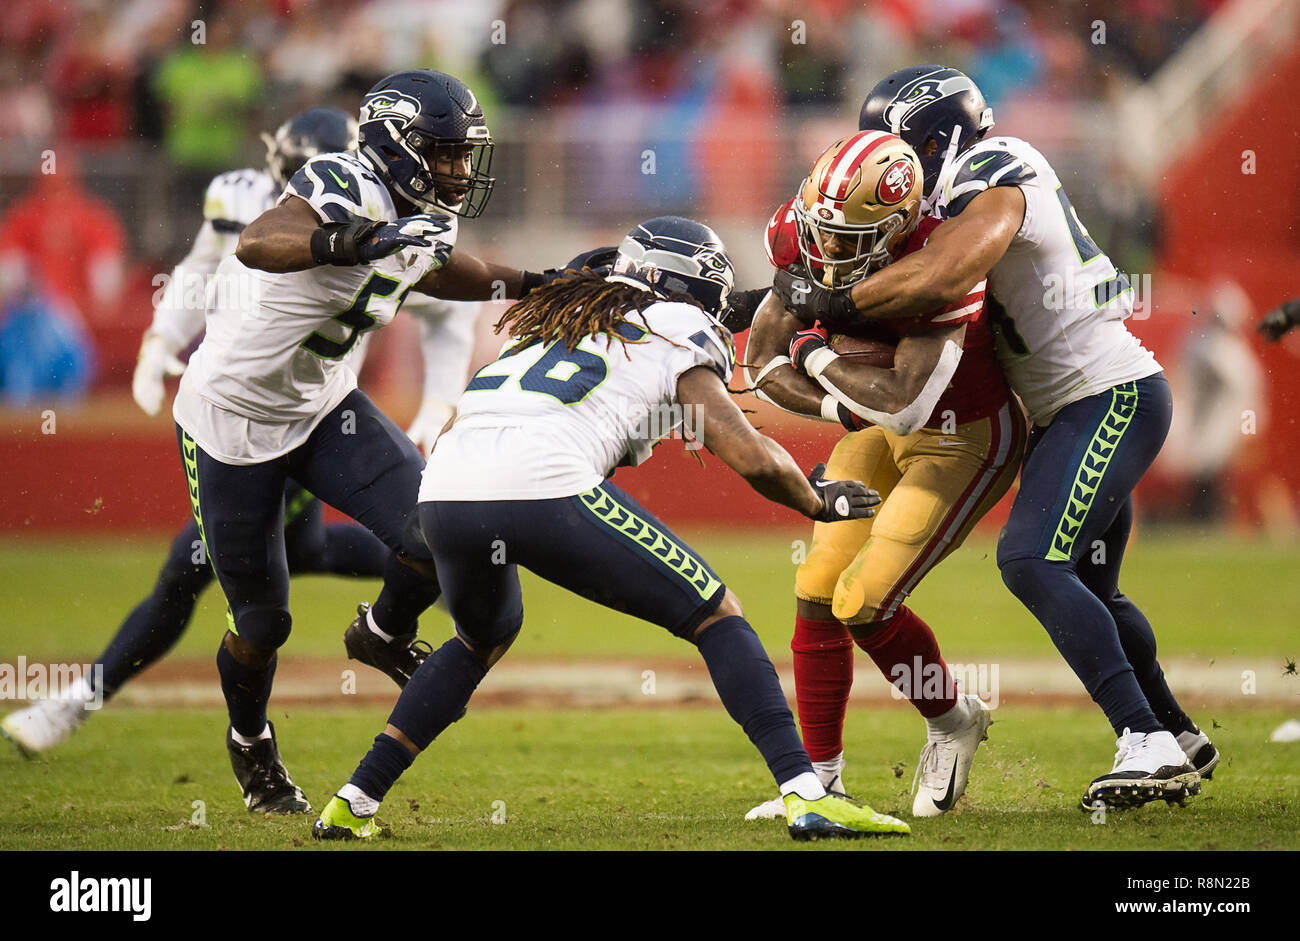 3dfc462a48b San Francisco 49ers wide receiver Marquise Goodwin (11) is tackled by Seattle  Seahawks middle linebacker Bobby Wagner (54) in the fourth quarter during a  .